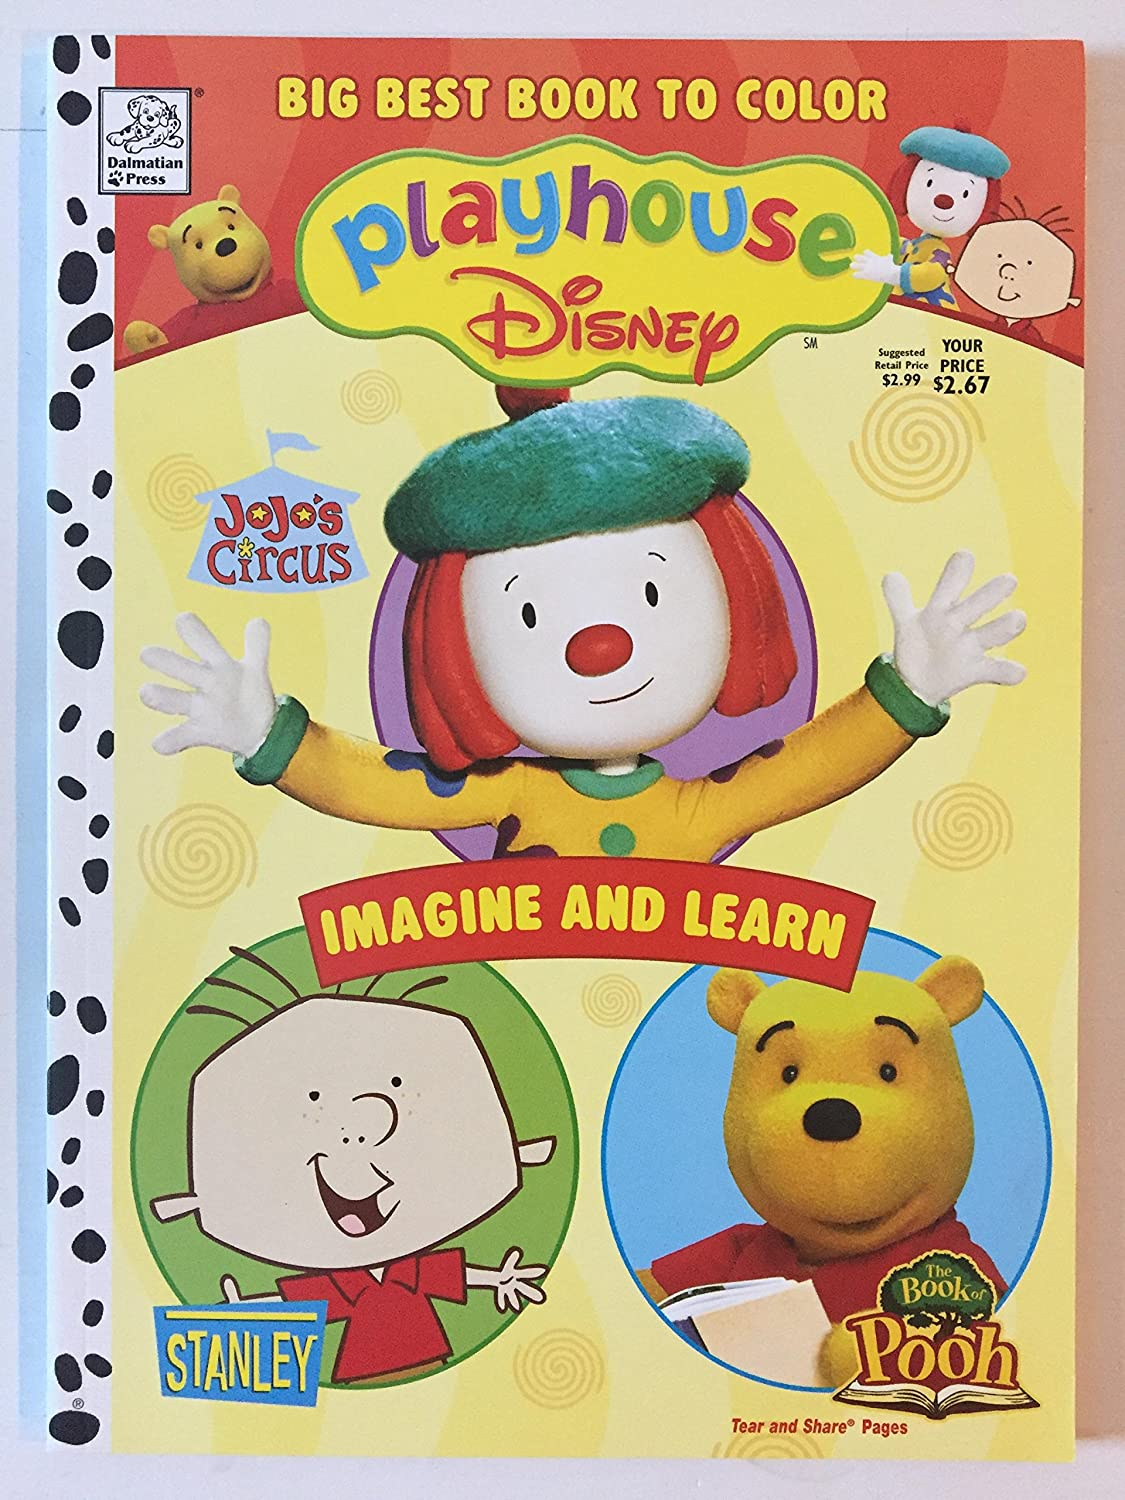 Playhouse Disney Games - Play Free Online Games